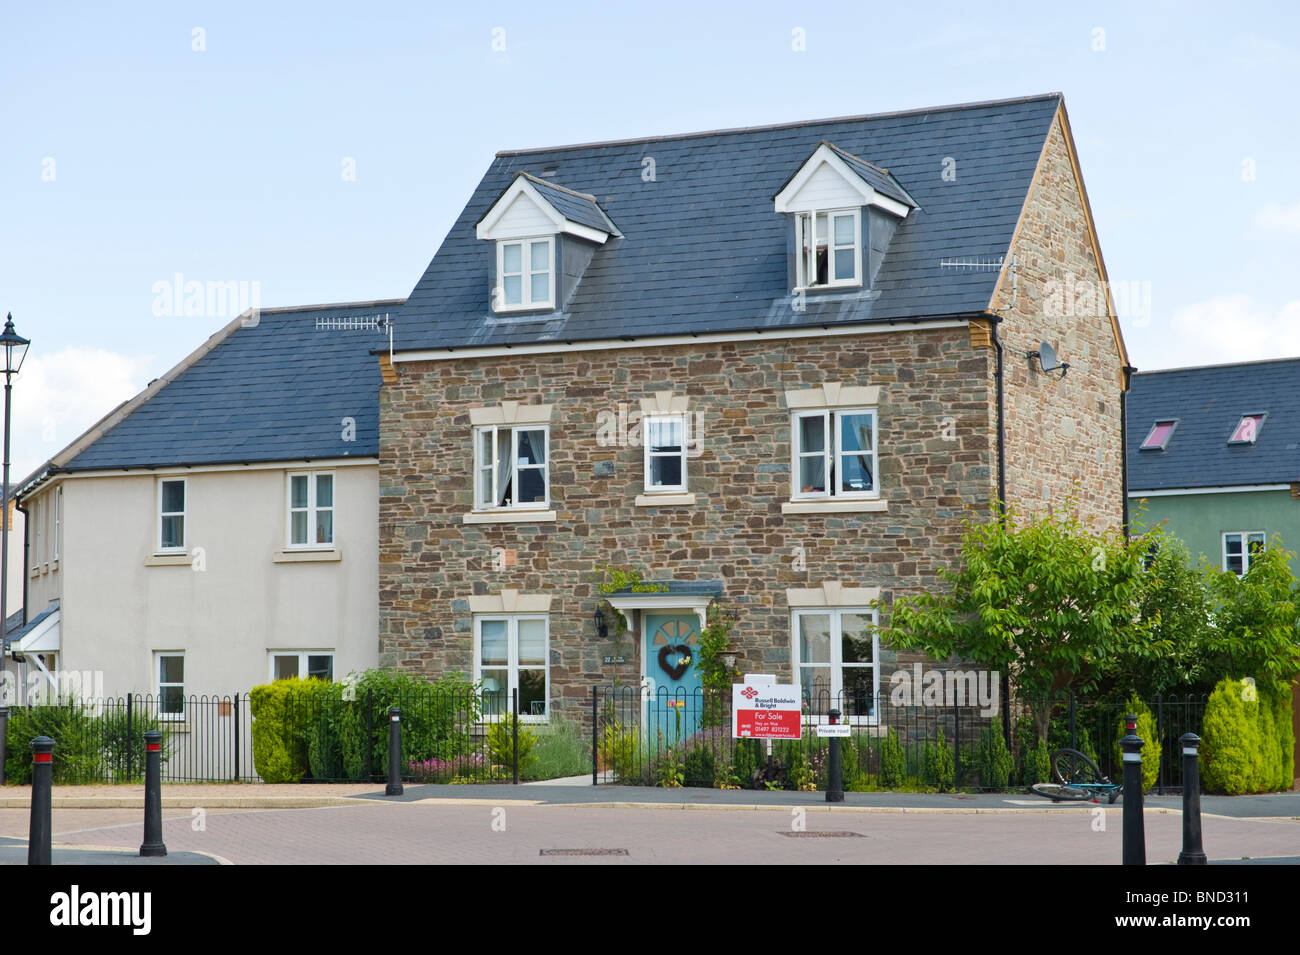 Large house for sale in Hay-on-Wye Powys Wales UK - Stock Image